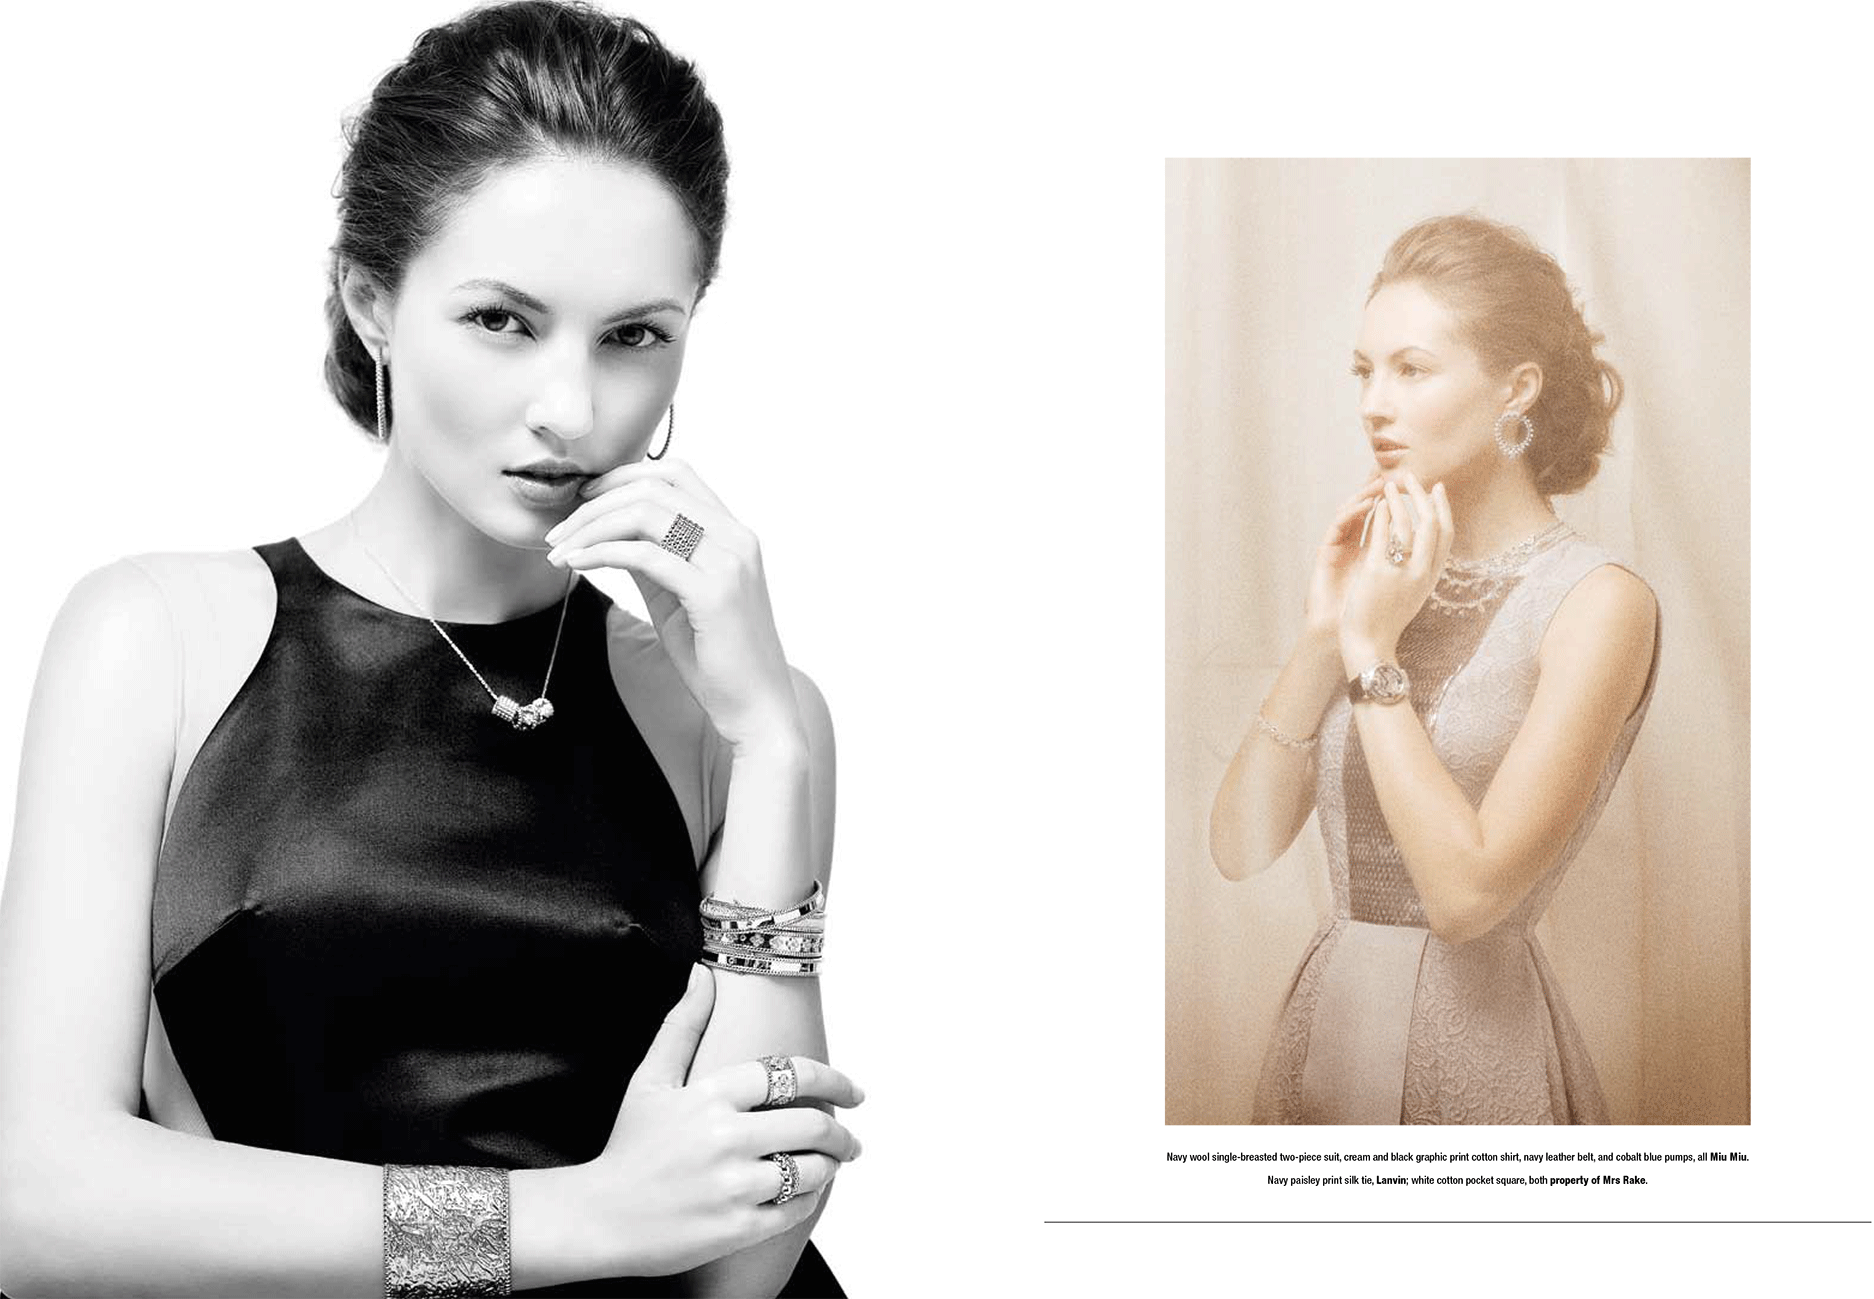 THE TIMES & JEWELLERY